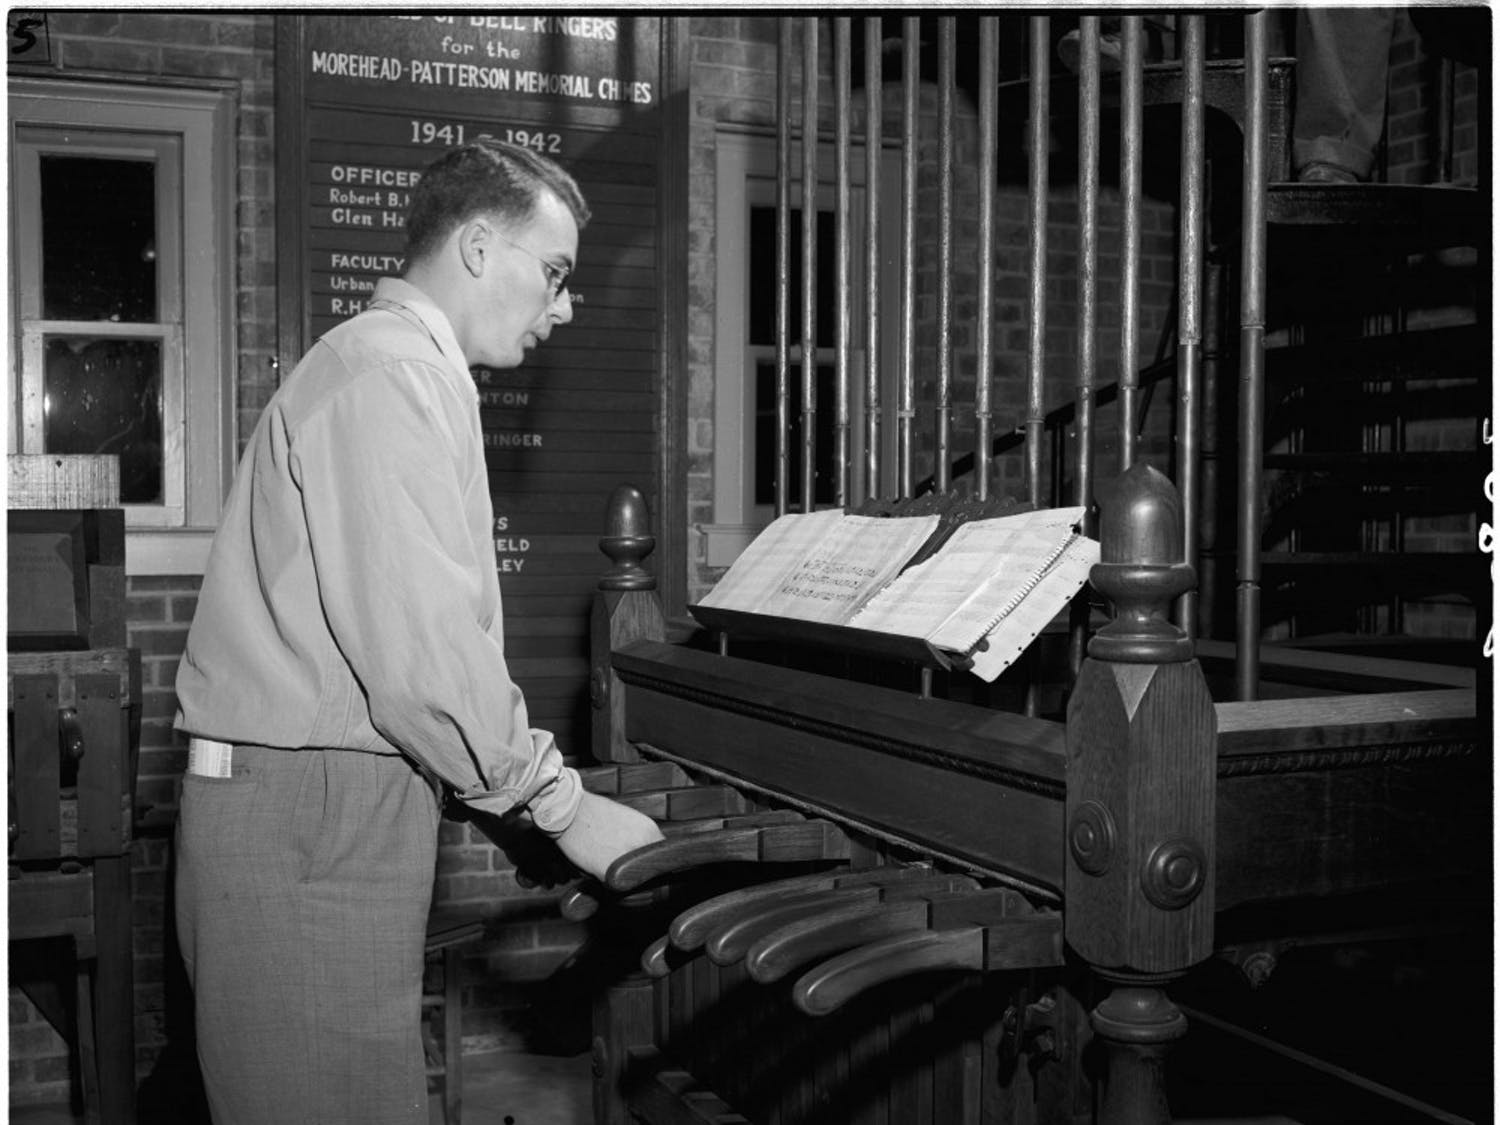 Ringing the bell tower used to require a series of levers. Now, it's as simple as pressing buttons. Courtesy of Nicholas Graham and University Archives.